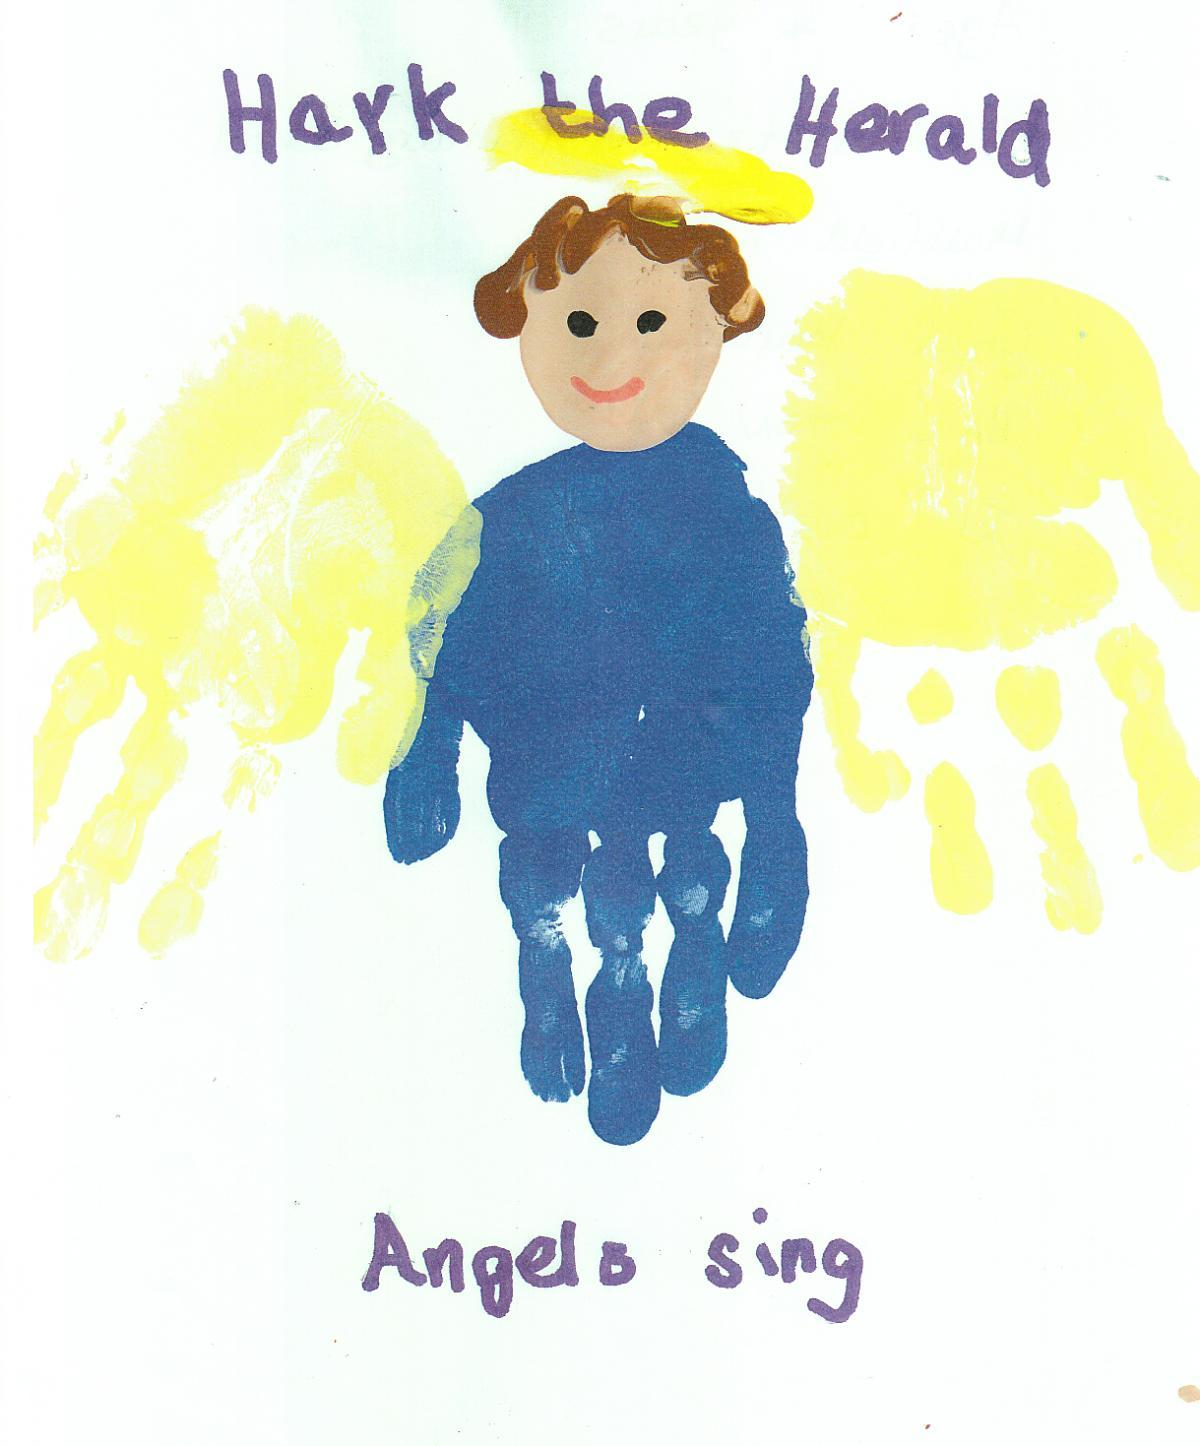 Four-year-old Poppy Dowling's entry for last year's Design a Christmas Card competition